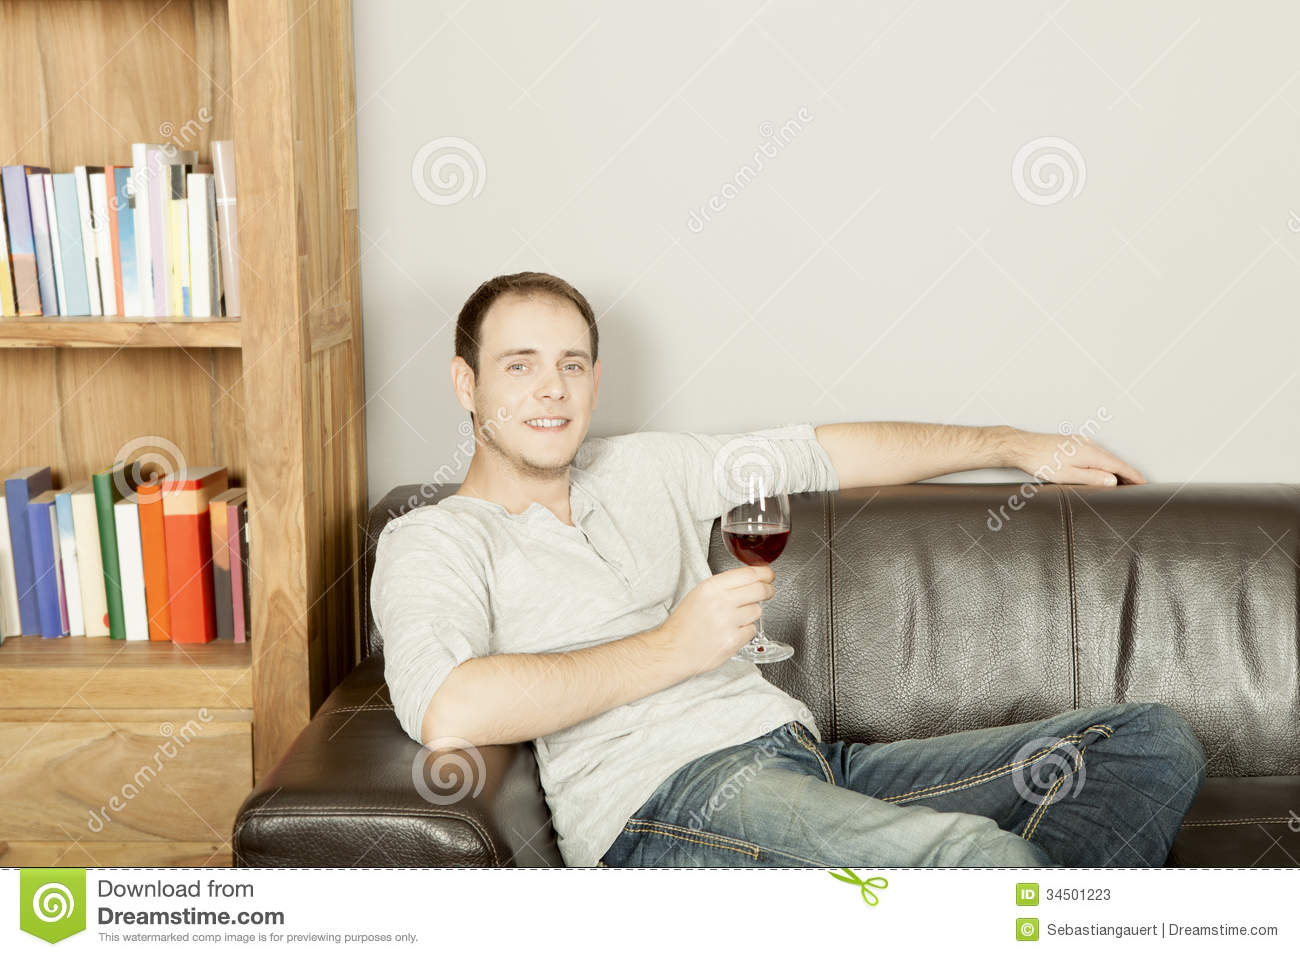 Royalty-Free Stock Photo  sc 1 st  Dreamstime.com & Handsome Happy Man Relaxing With A Glass Of Wine Stock Photos ... islam-shia.org